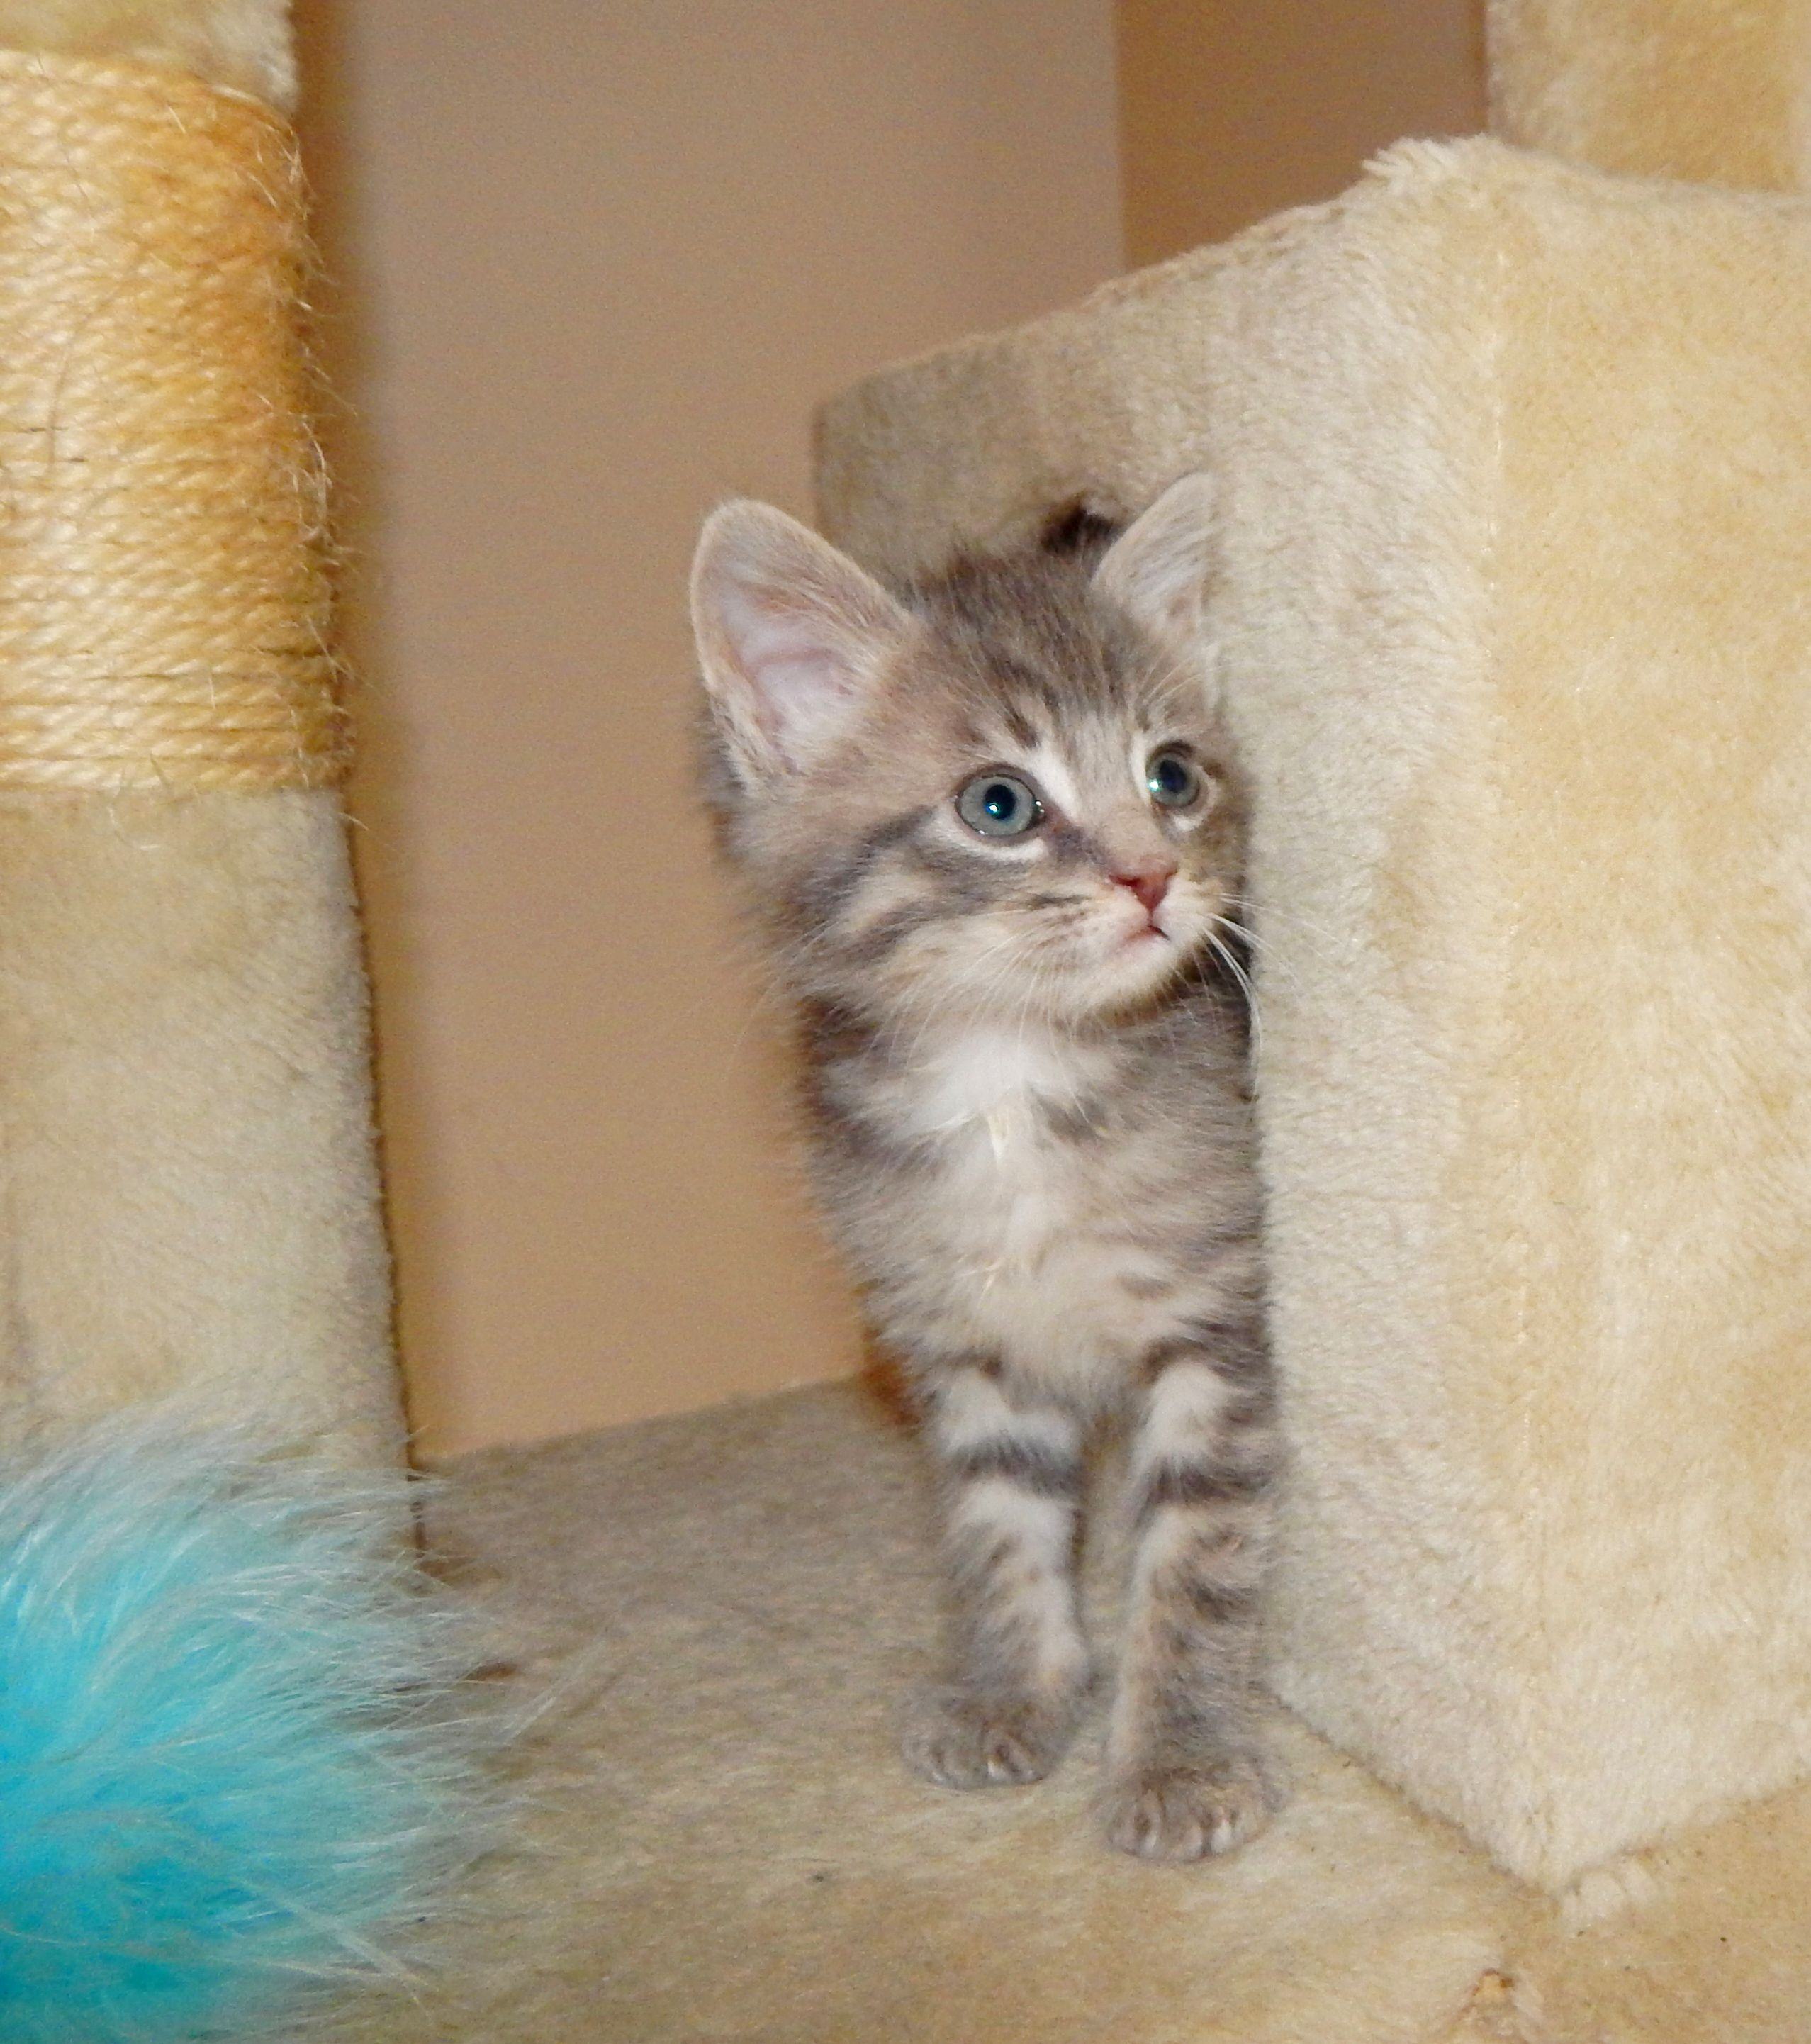 Kit / Male / 7 weeks old Last Chance Pet Rescue, Inc